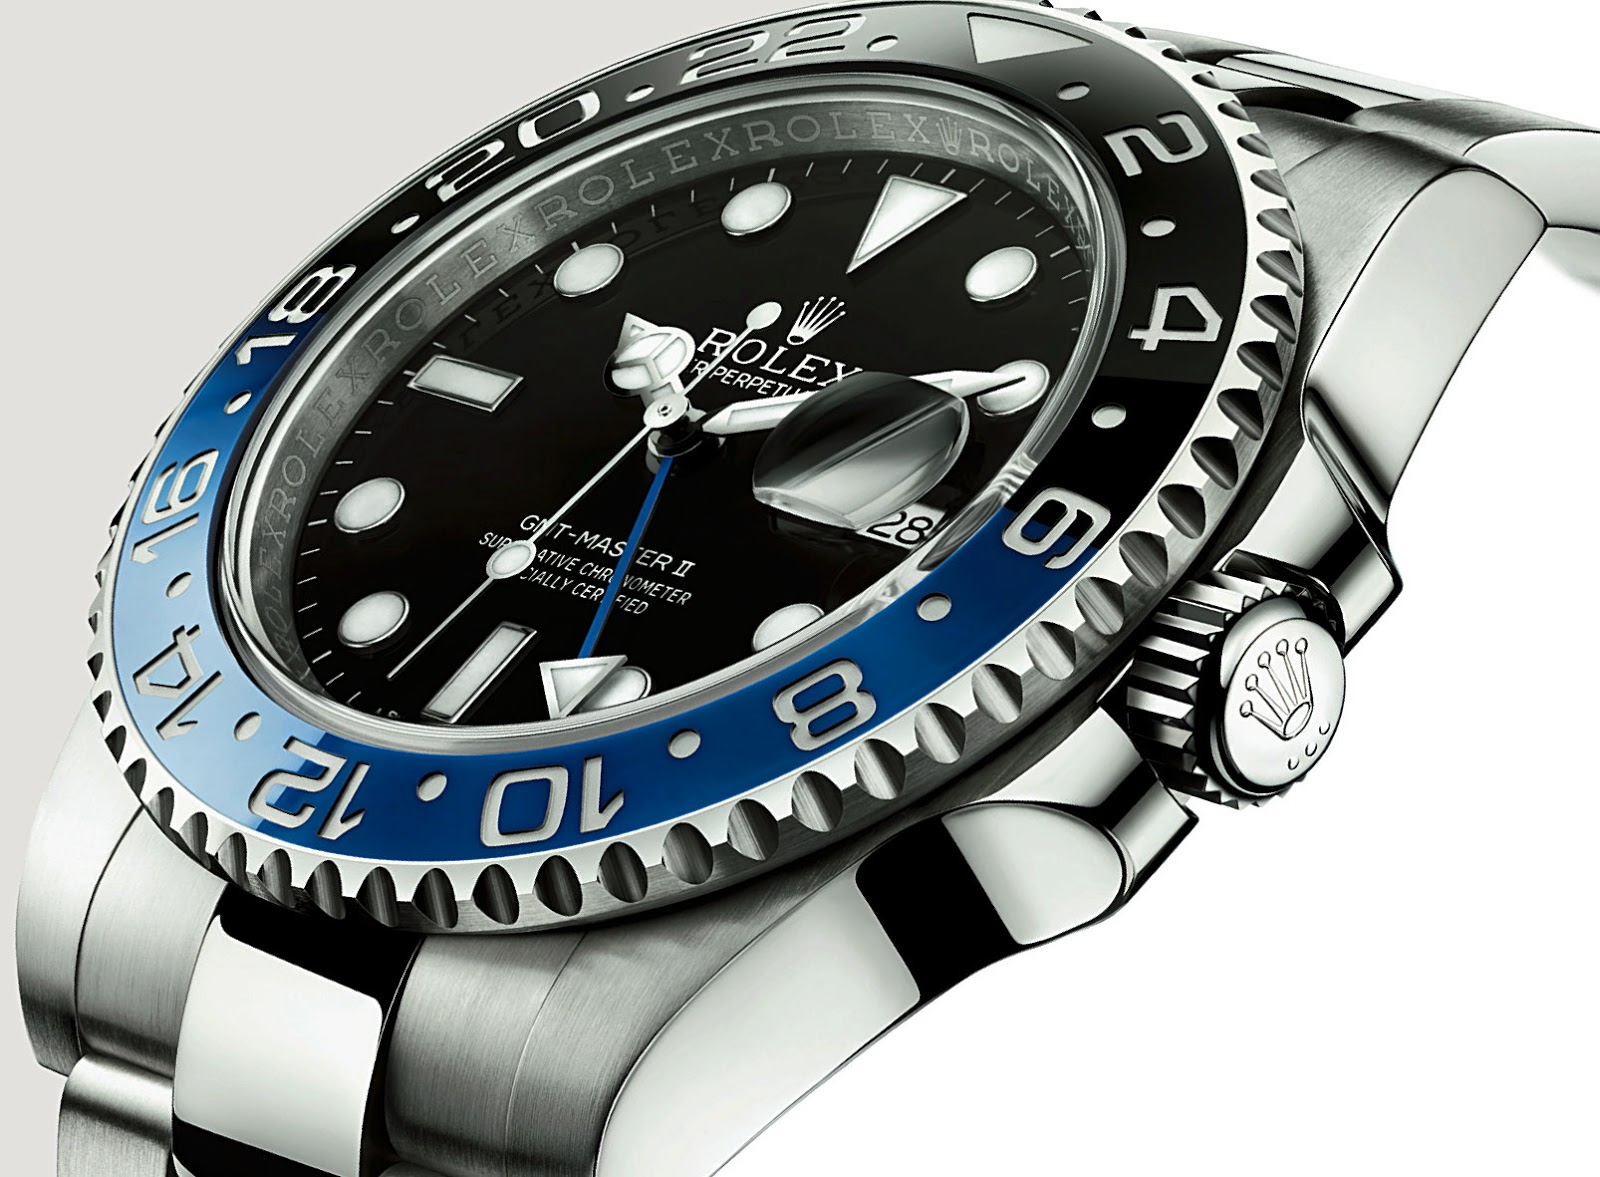 GMT: Welcome To RolexMagazine.com...Home Of Jake's Rolex World